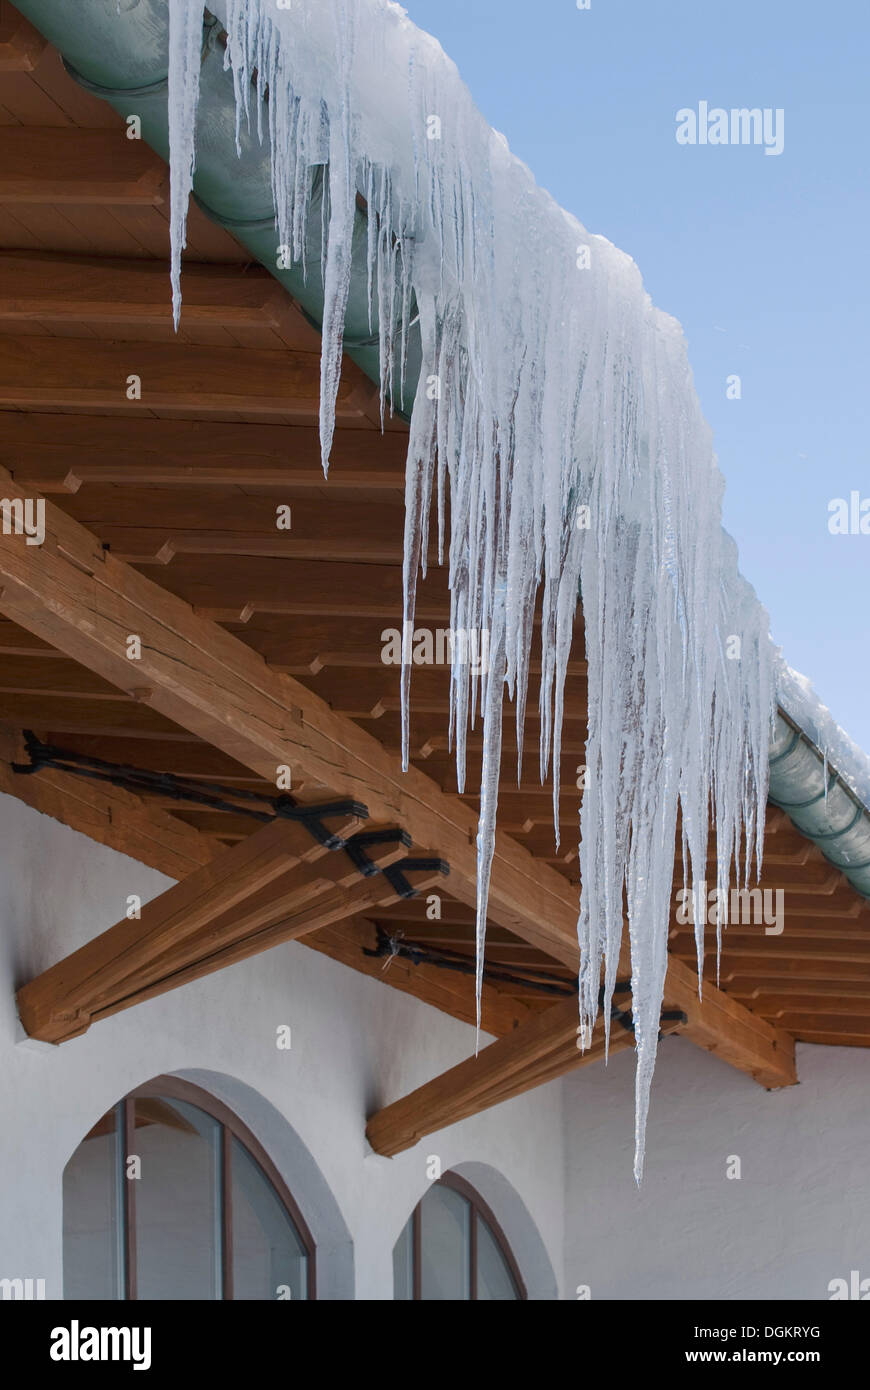 Big icicles hanging over the gutter of a mountain lodge, Bavaria - Stock Image